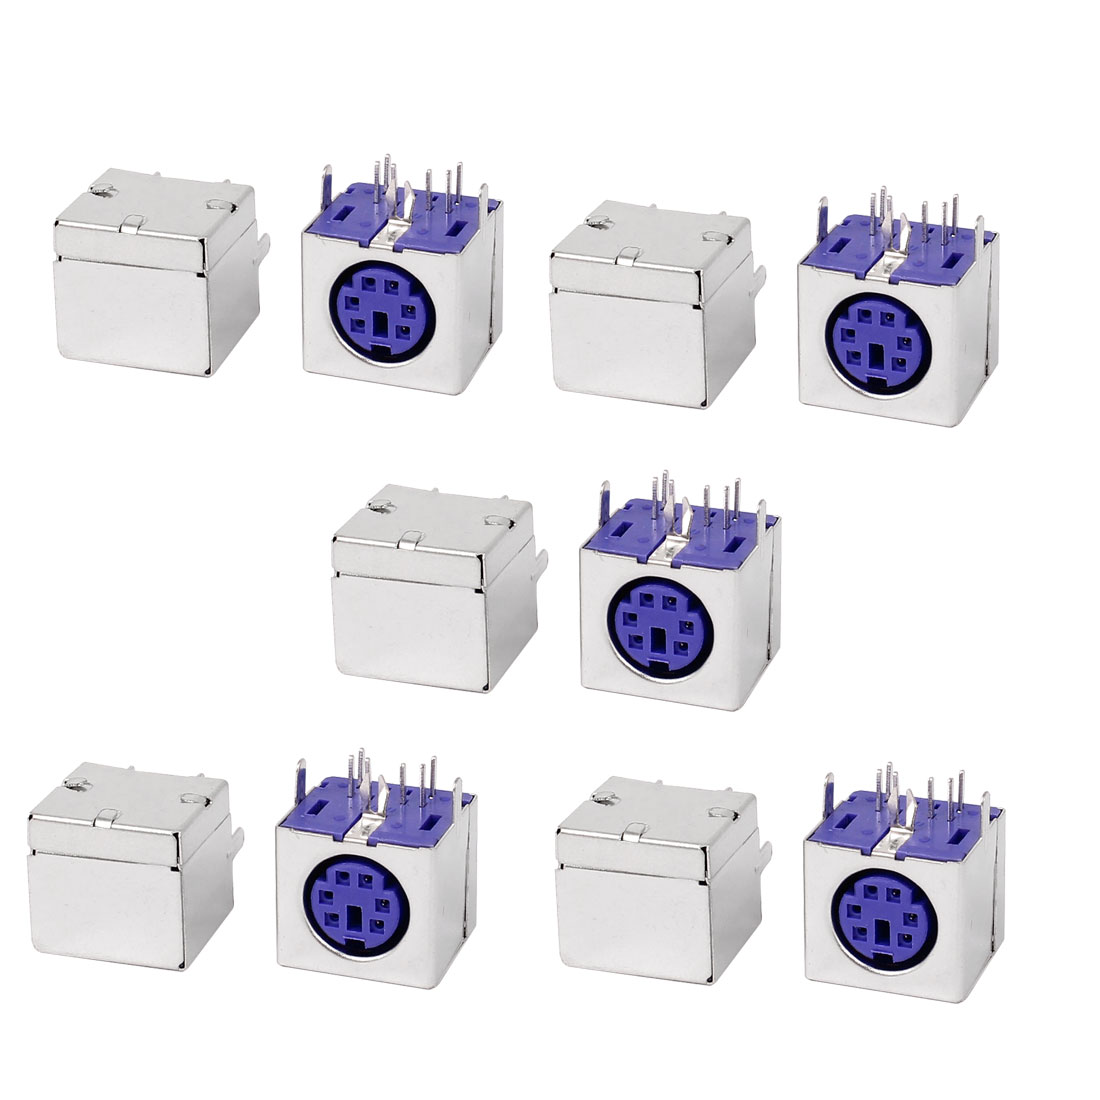 10pcs-PS-2-6P-Mini-DIN-Plug-Female-PCB-Mouse-Keyboard-Socket-Purple